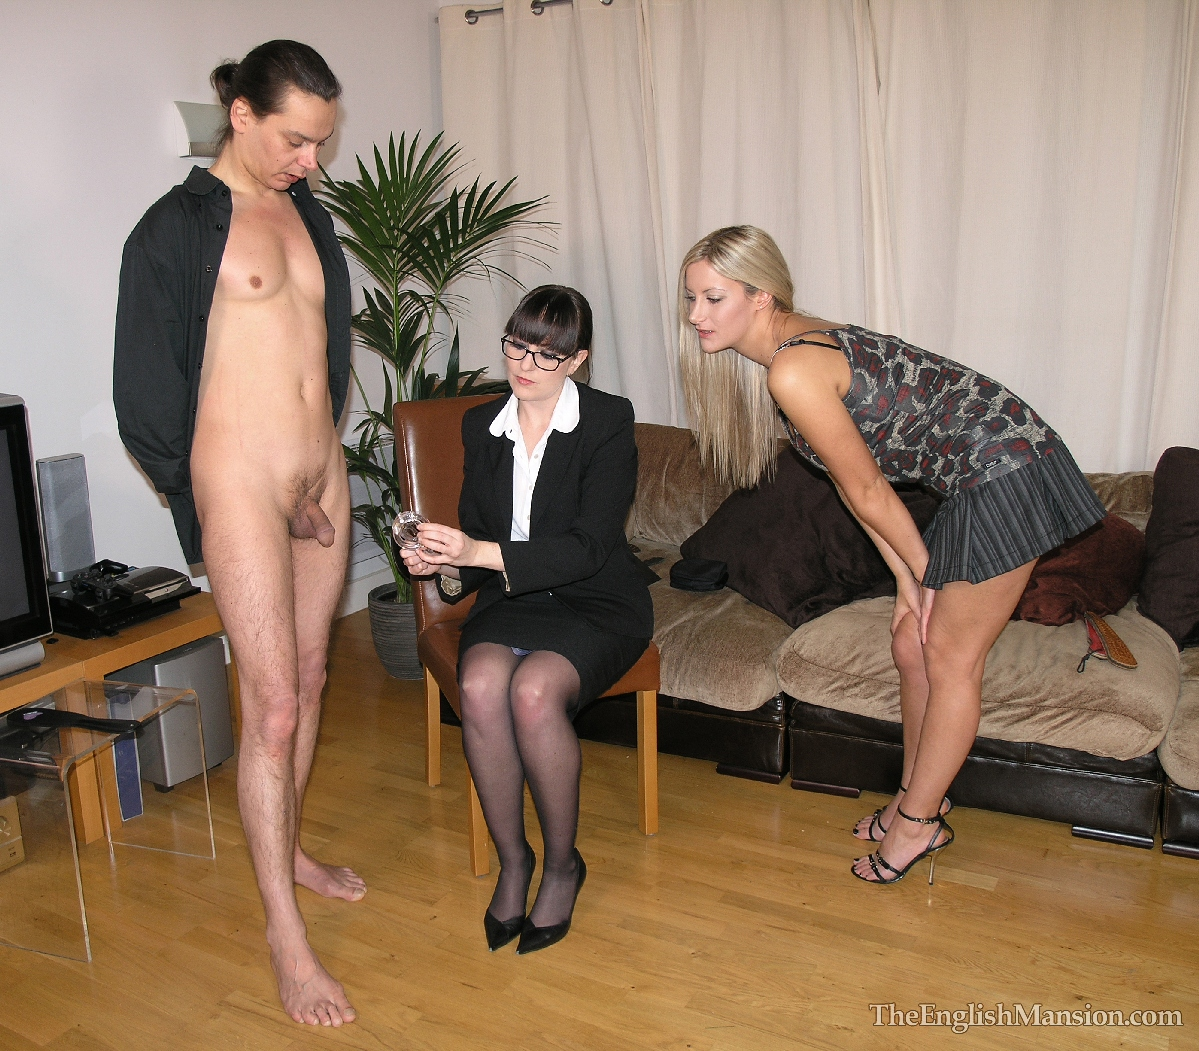 dominant strict women spanking men